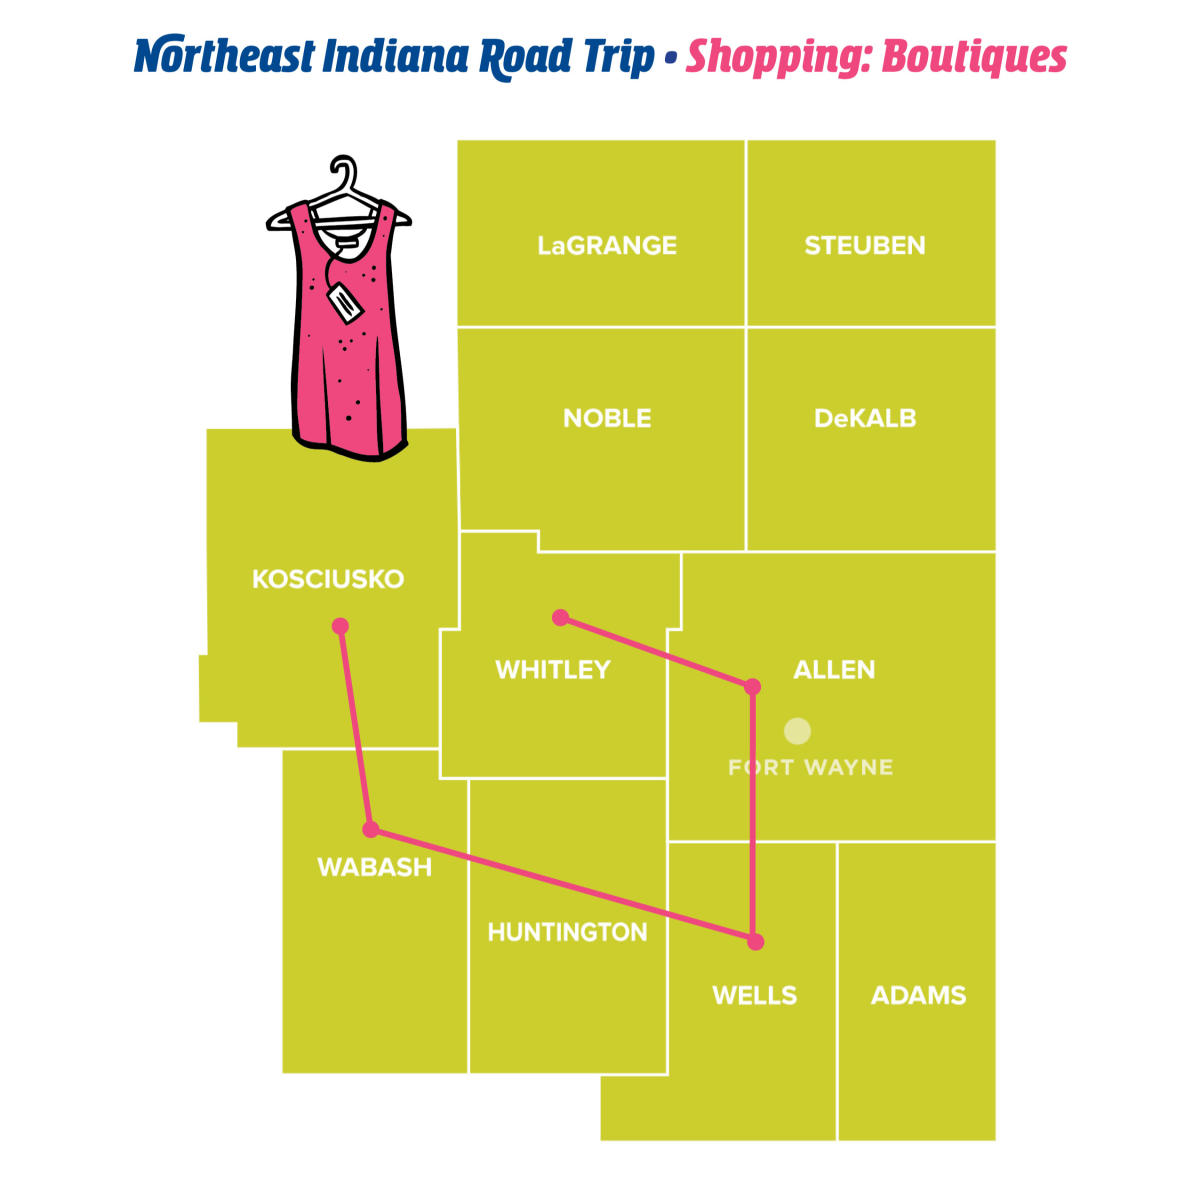 Boutiques - Northeast Indiana Road Trips